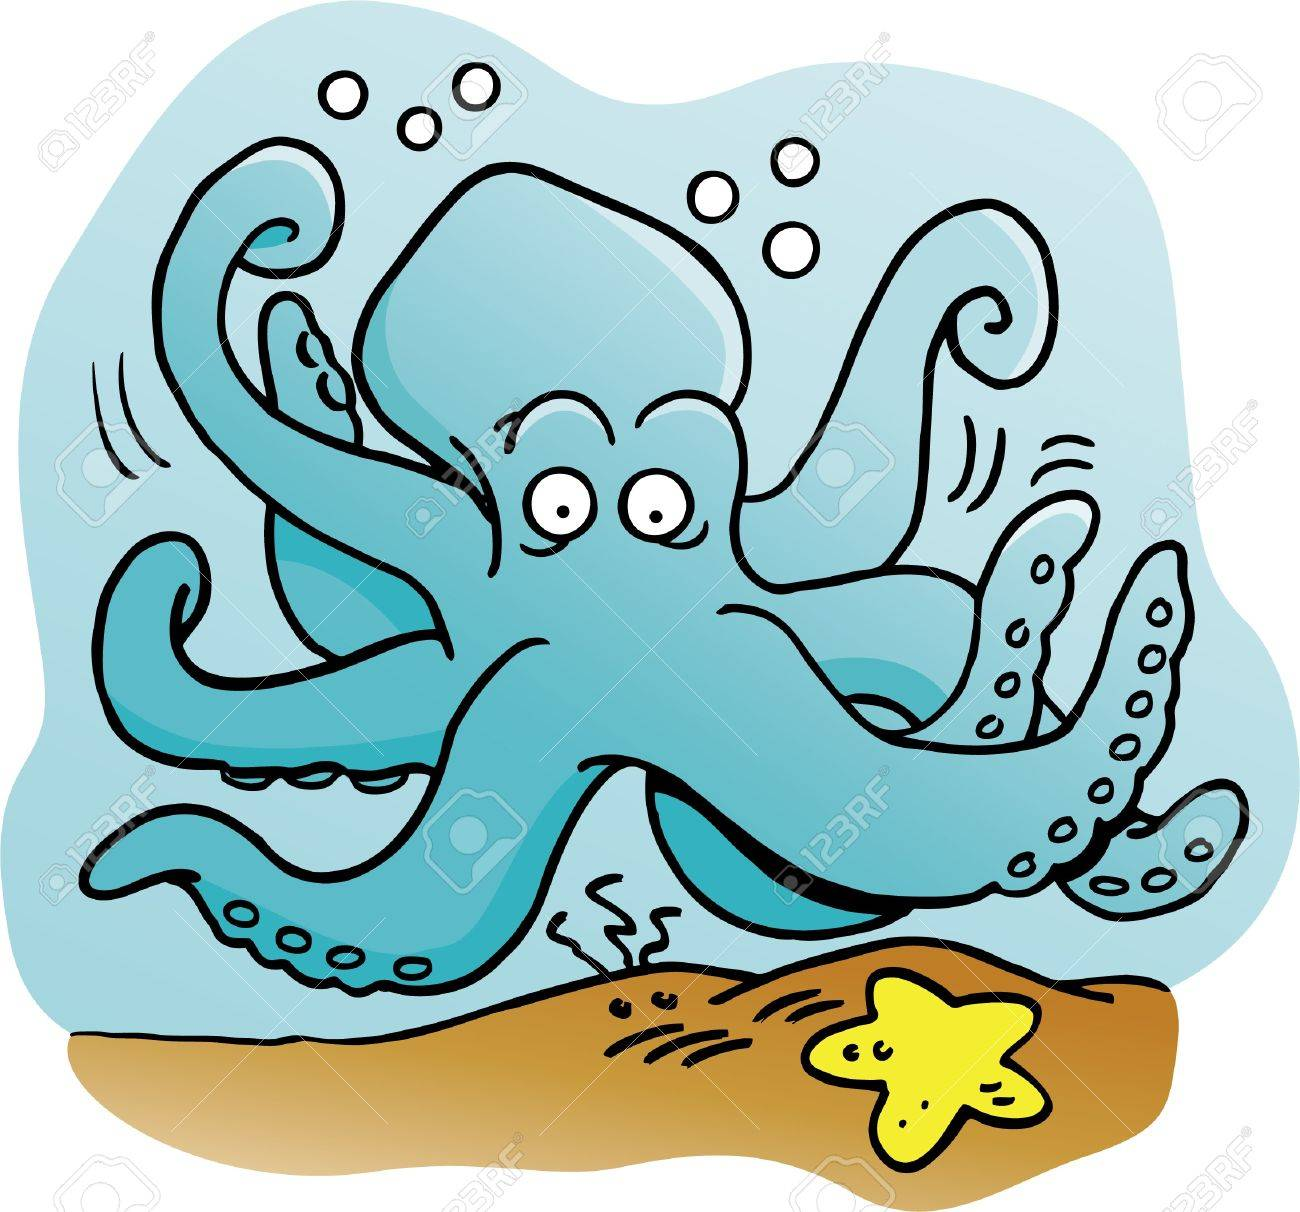 Cartoon Illustration Of An Octopus Royalty Free Cliparts, Vectors ...